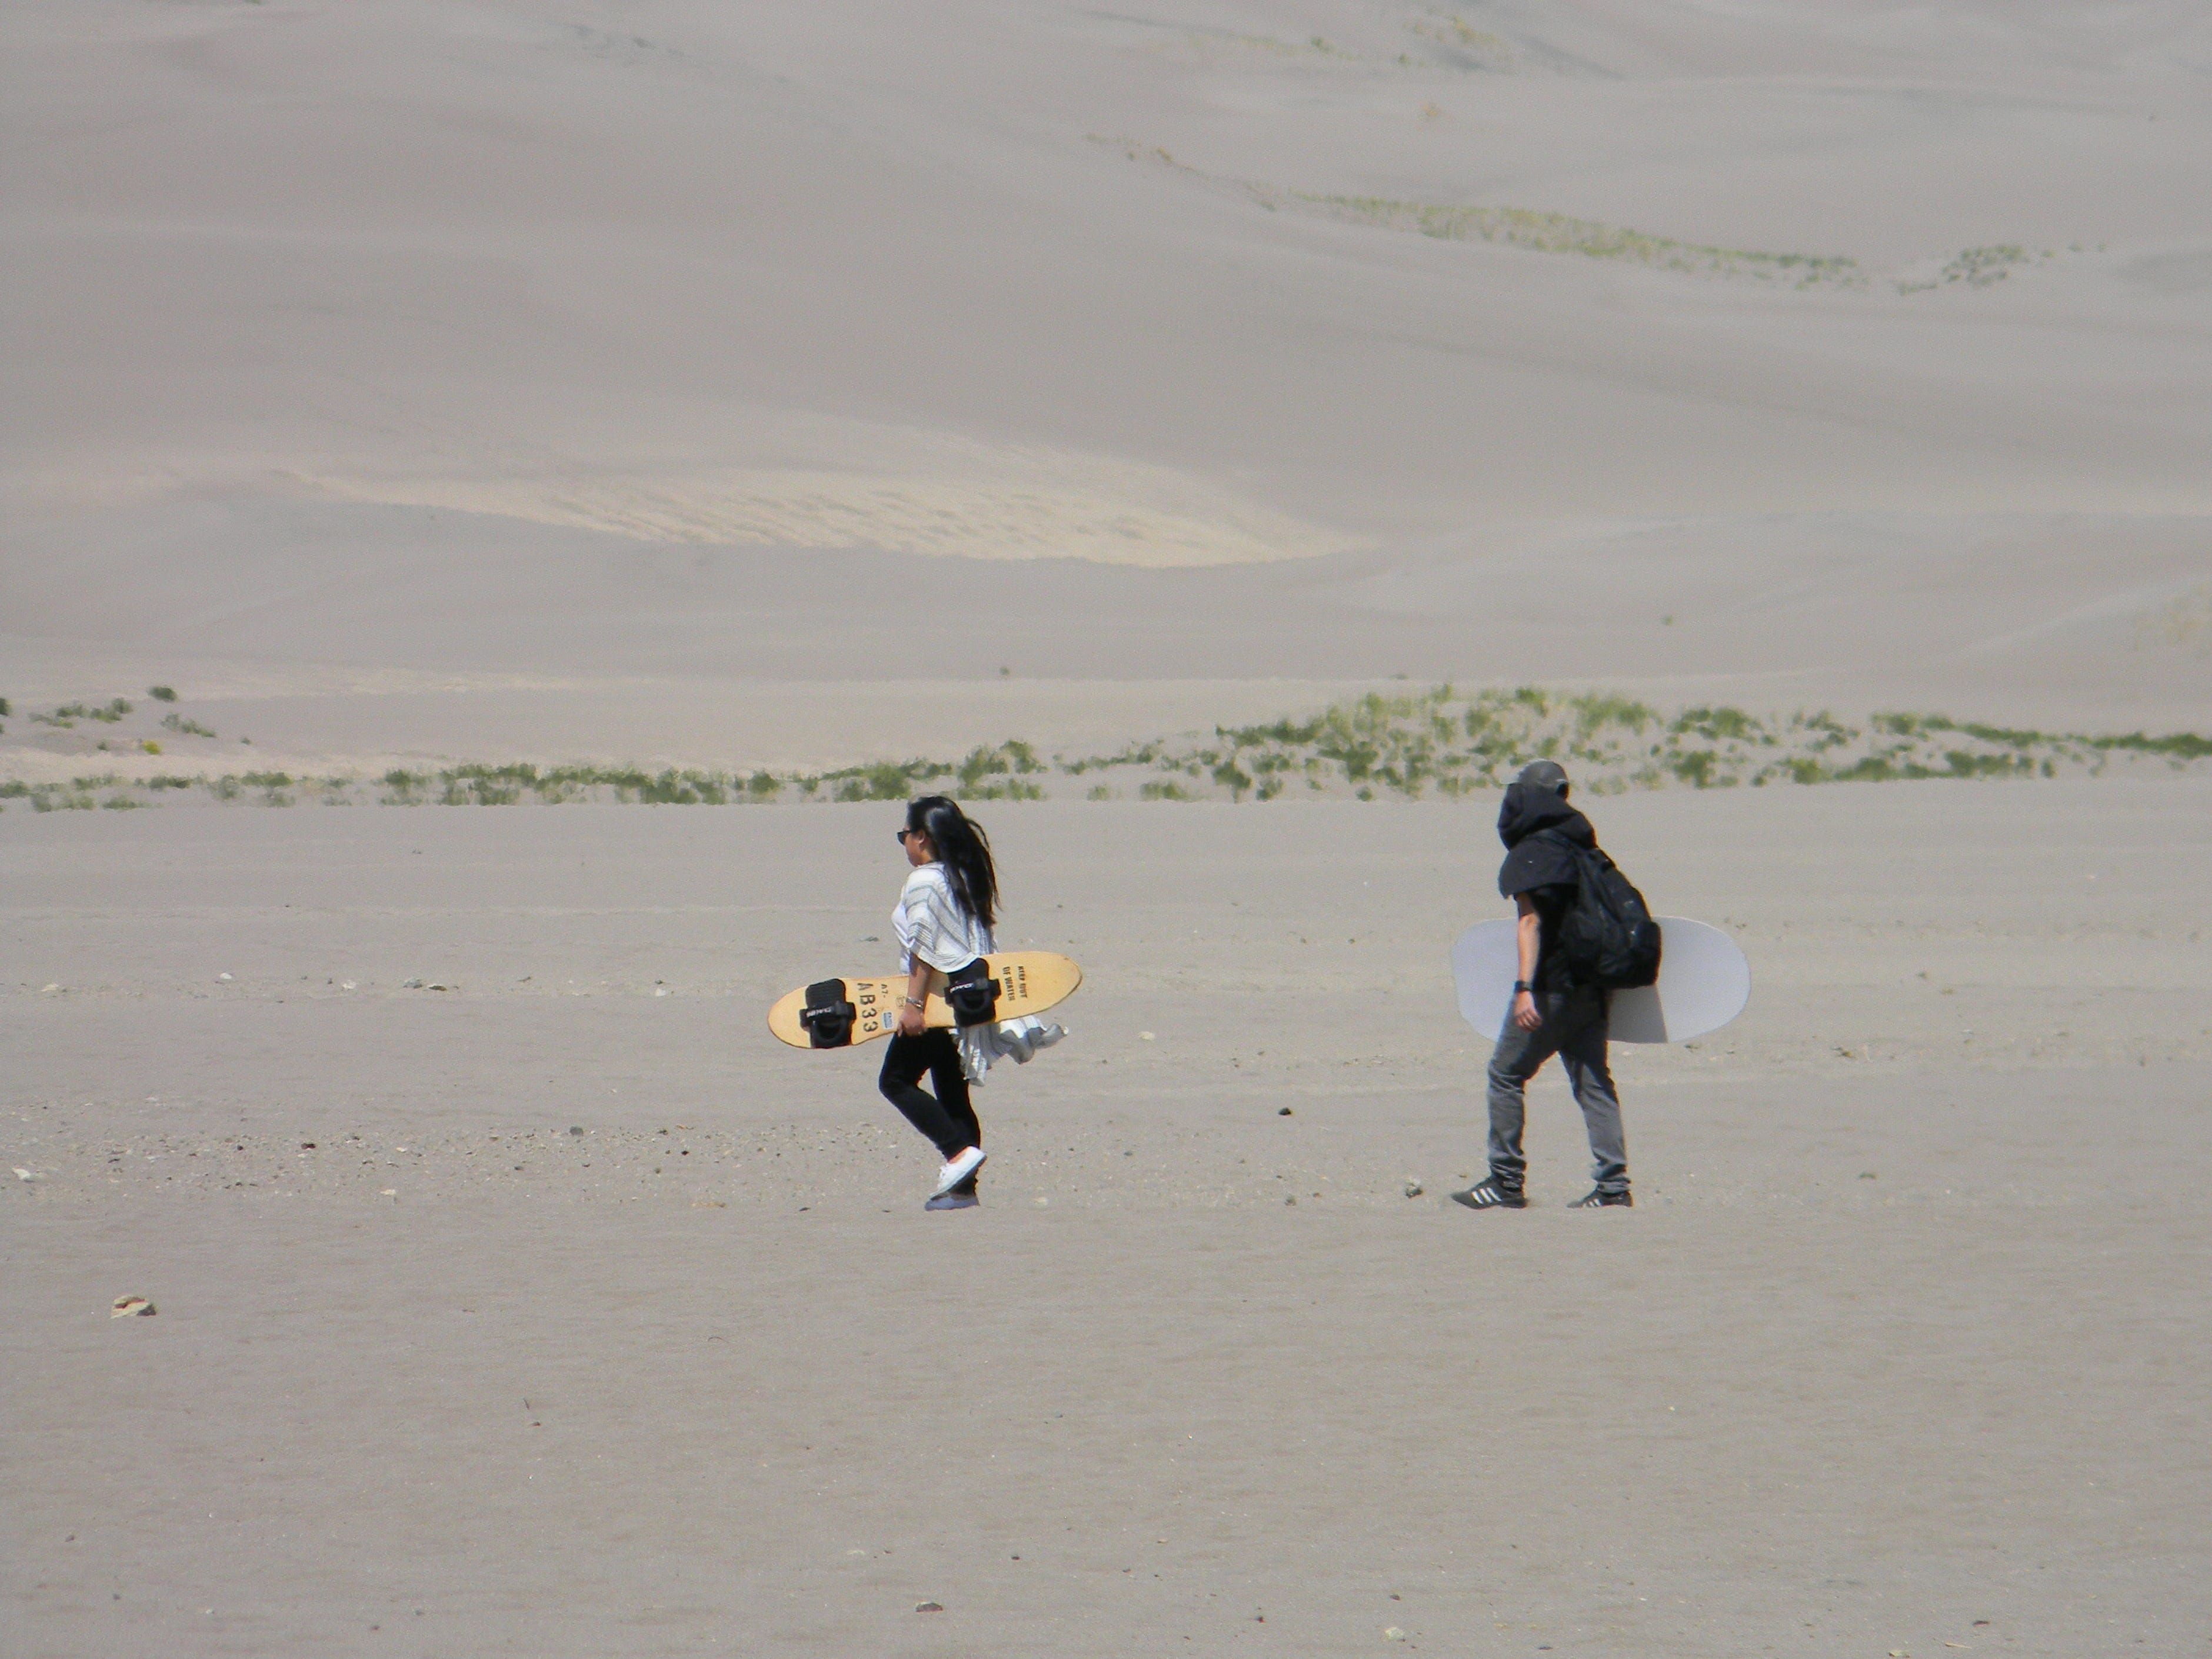 Youth carry sand sled and sand board, wondering perhaps if the sand behaves like snow … or if they face new and interesting challenges at Great Sands Dunes National Park.